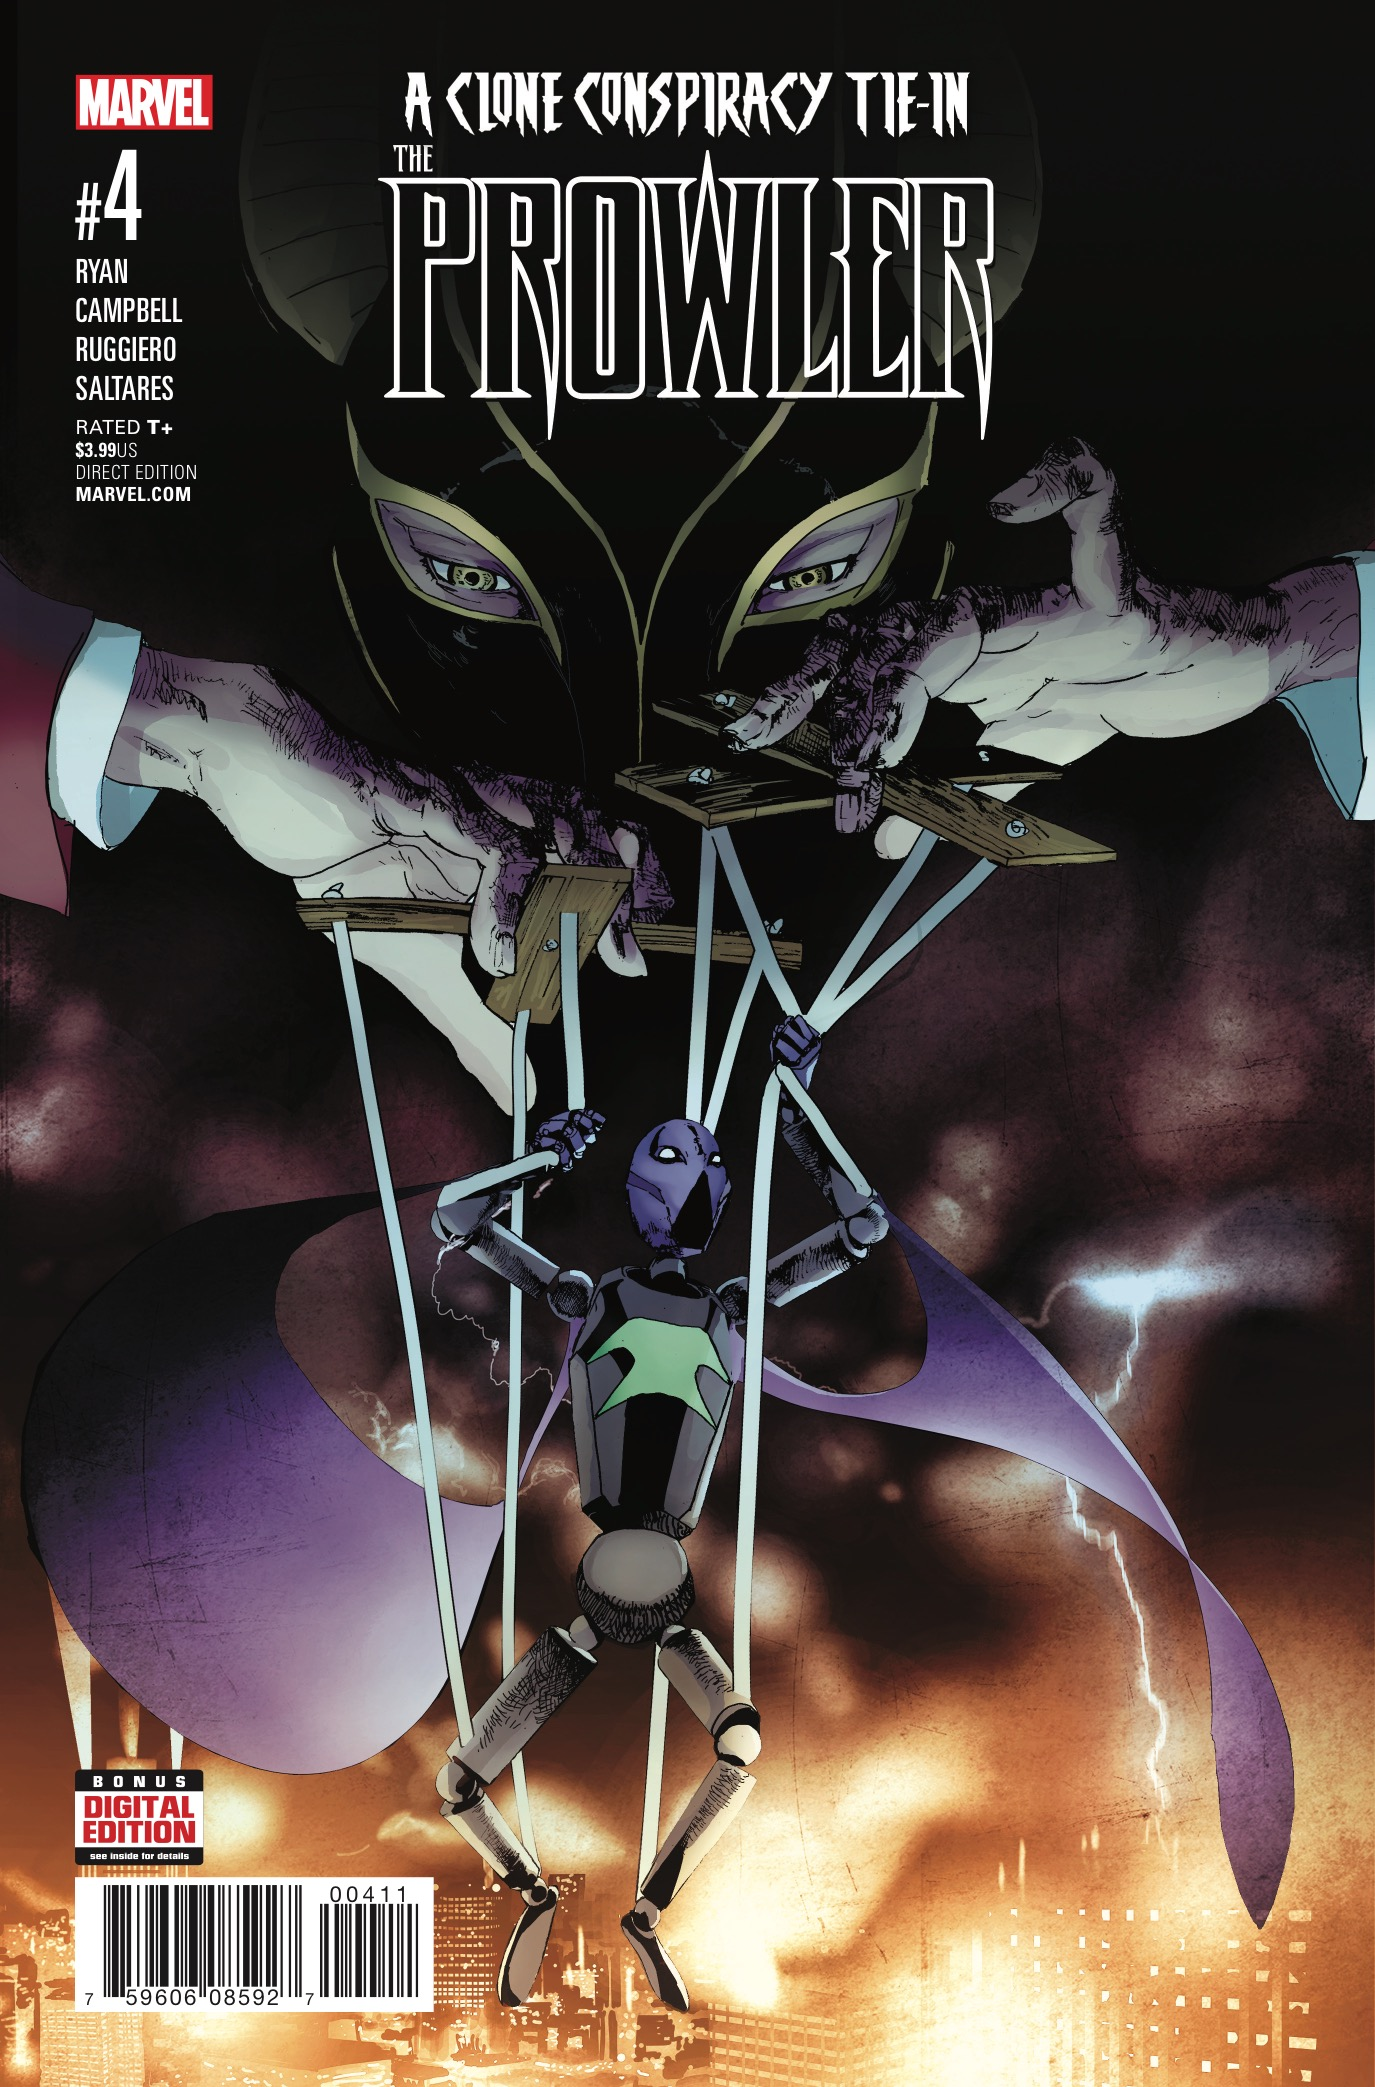 Marvel Preview: Prowler #4